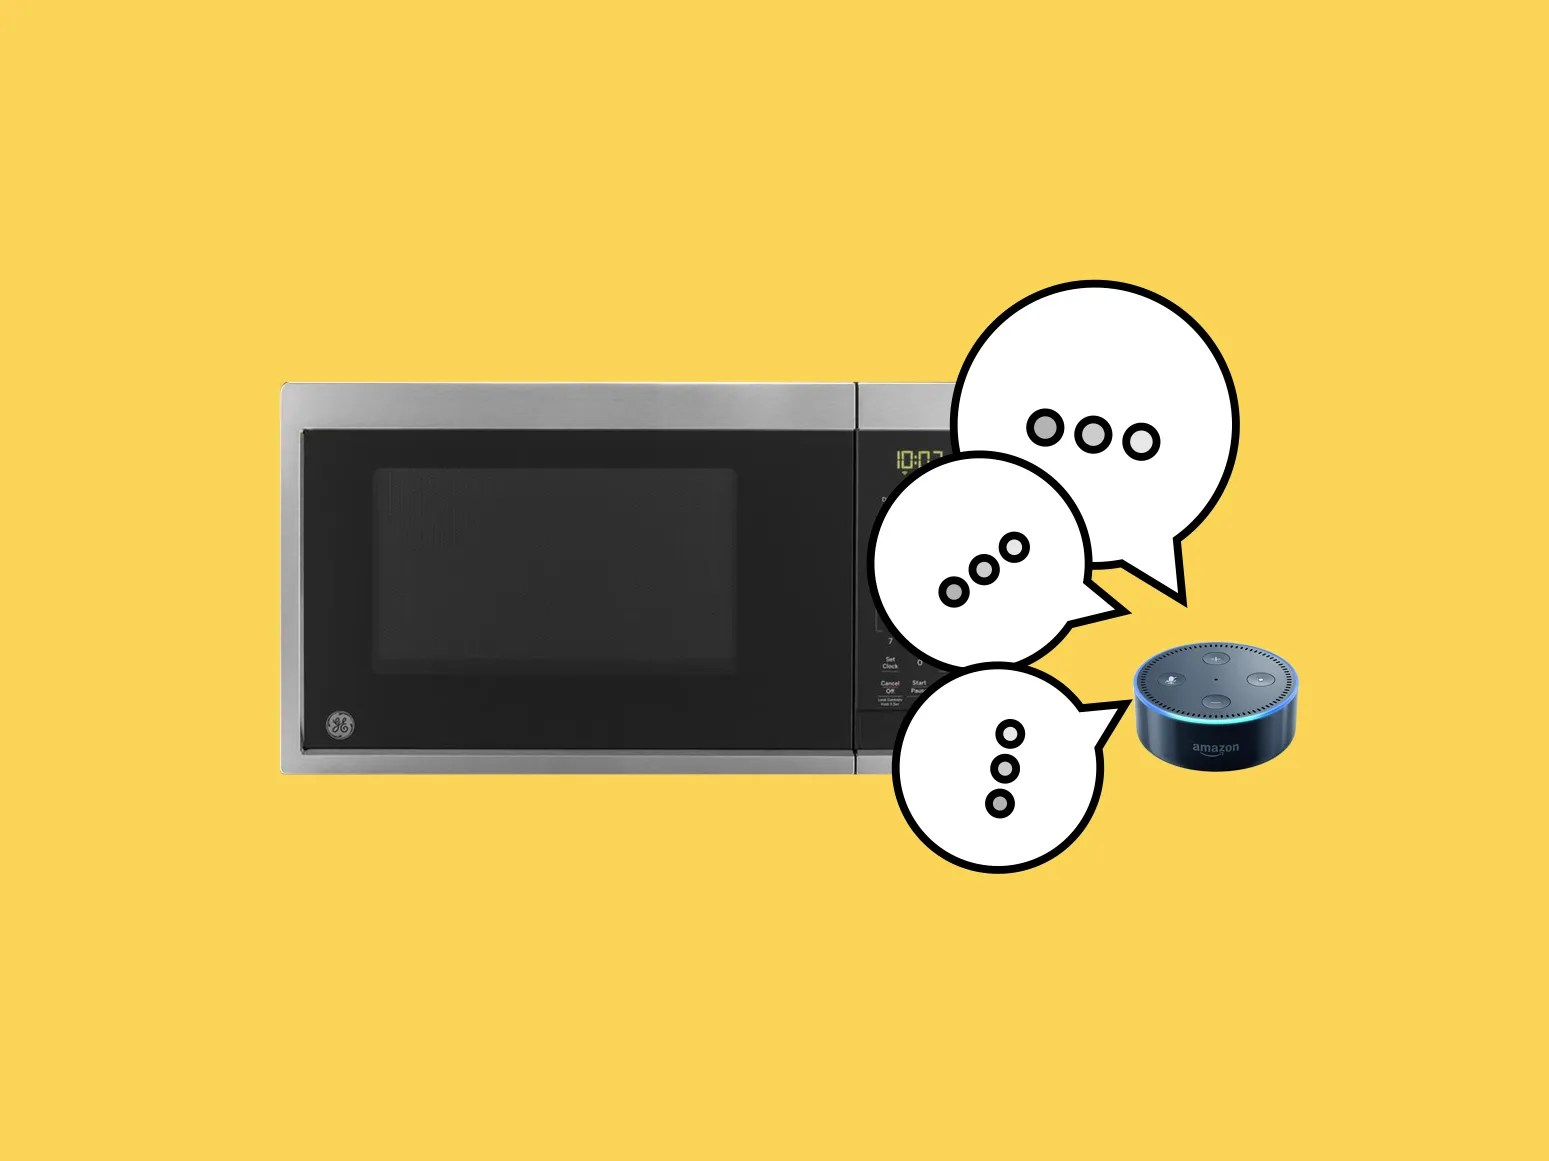 smart countertop microwave with scan to cook technology